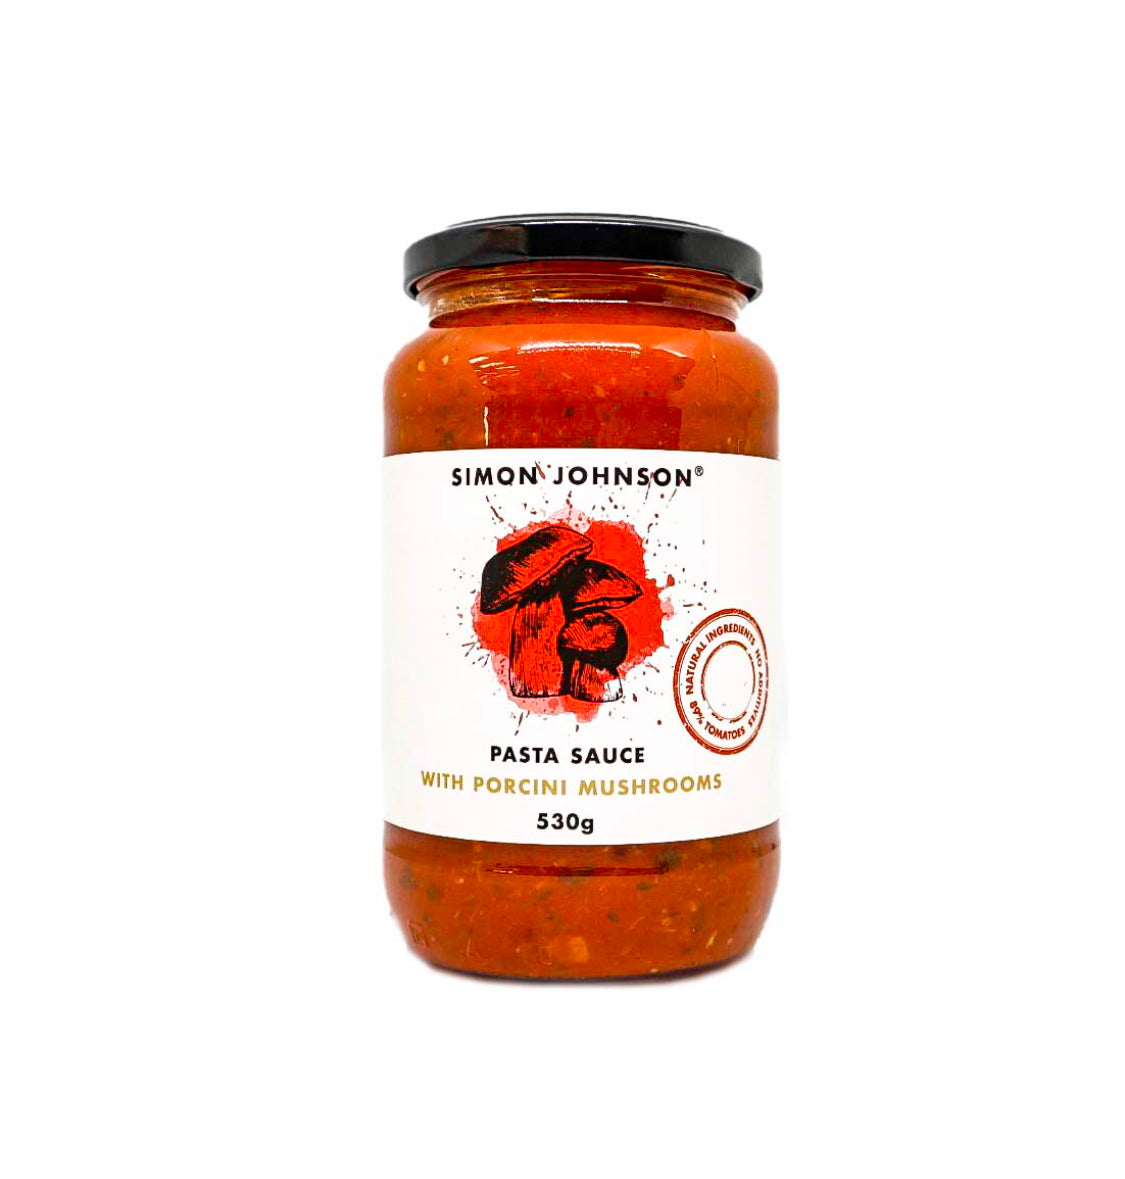 Simon Johnson Pasta Sauces